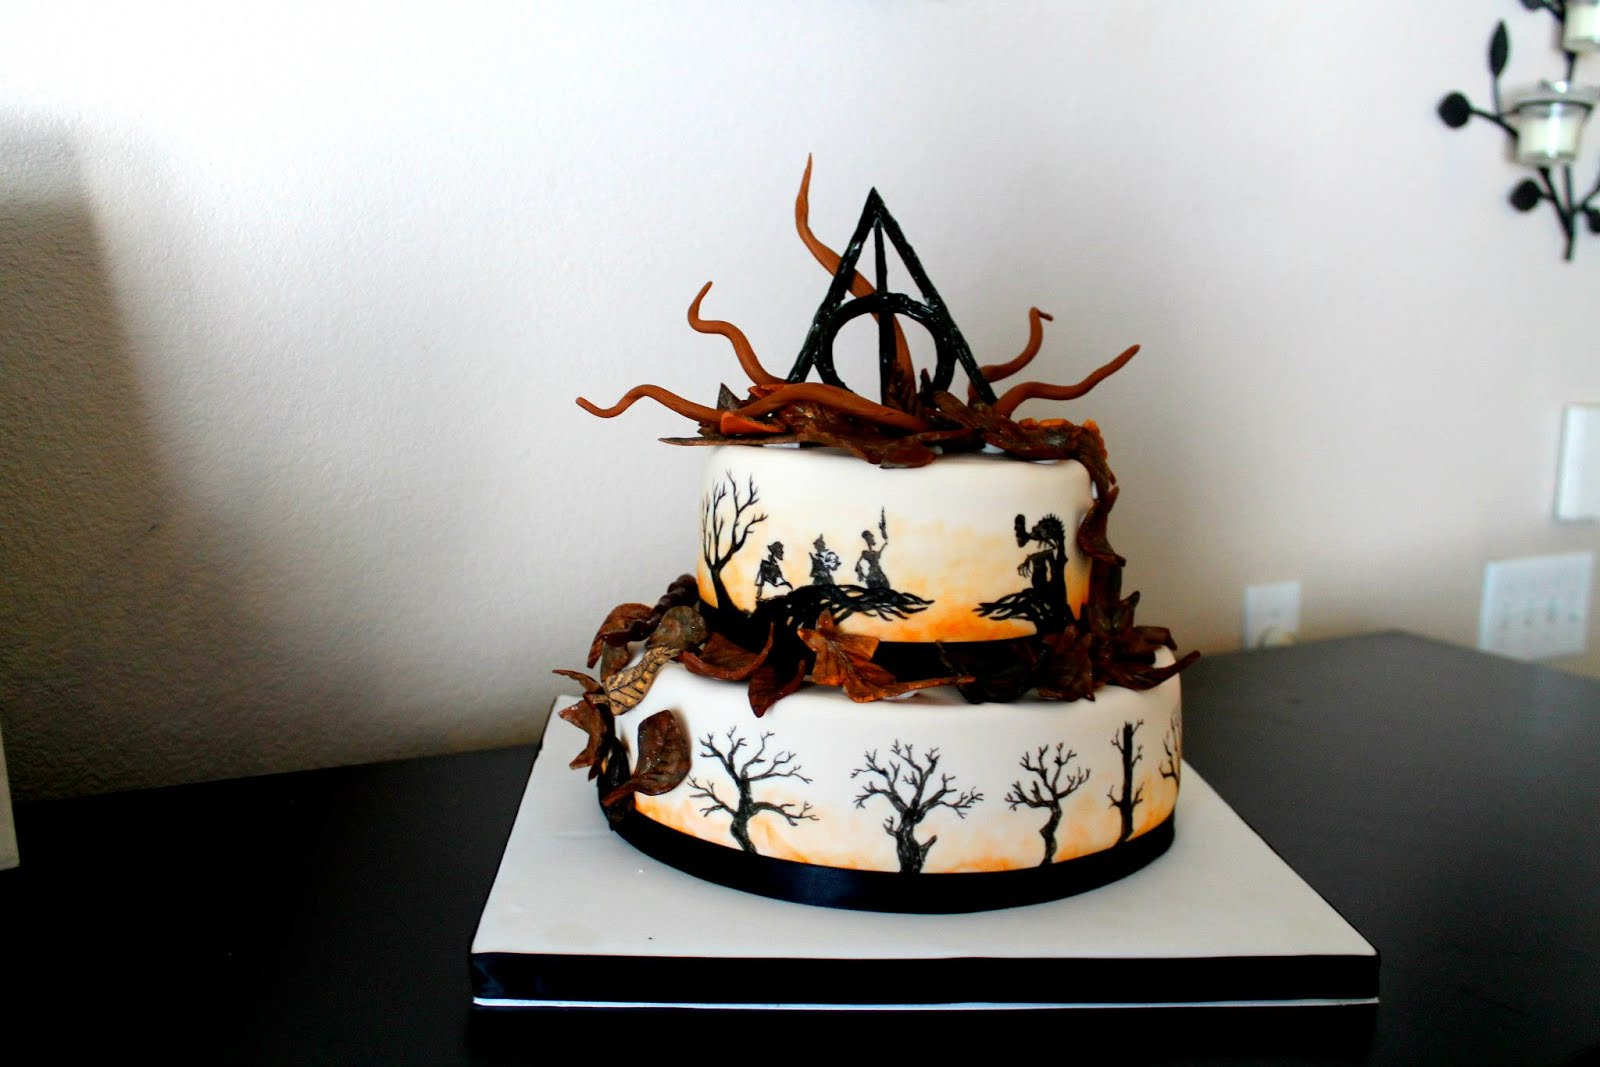 photo story assignment ideas - My Culinary Creations Harry Potter Cake Tale of the